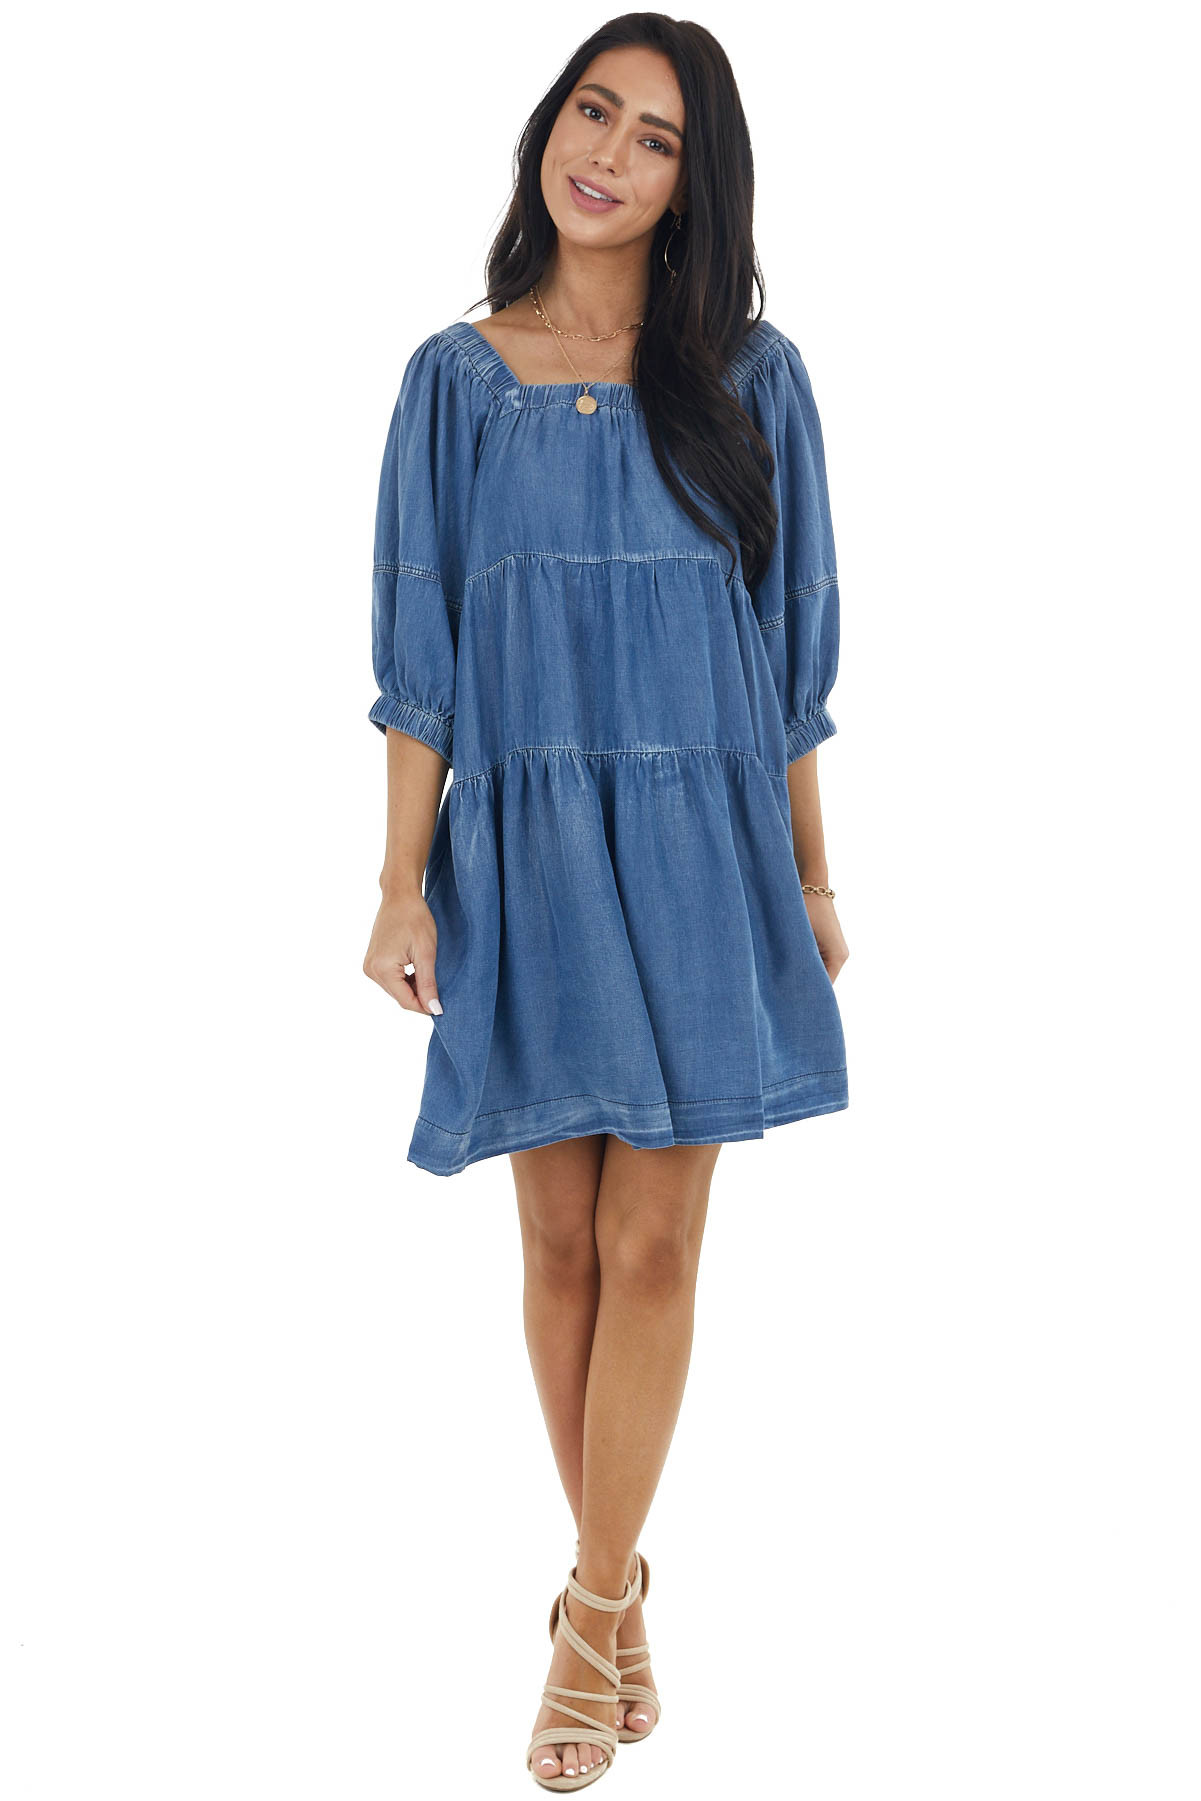 Dusty Blue Faux Denim Tiered Dress with Half Sleeves